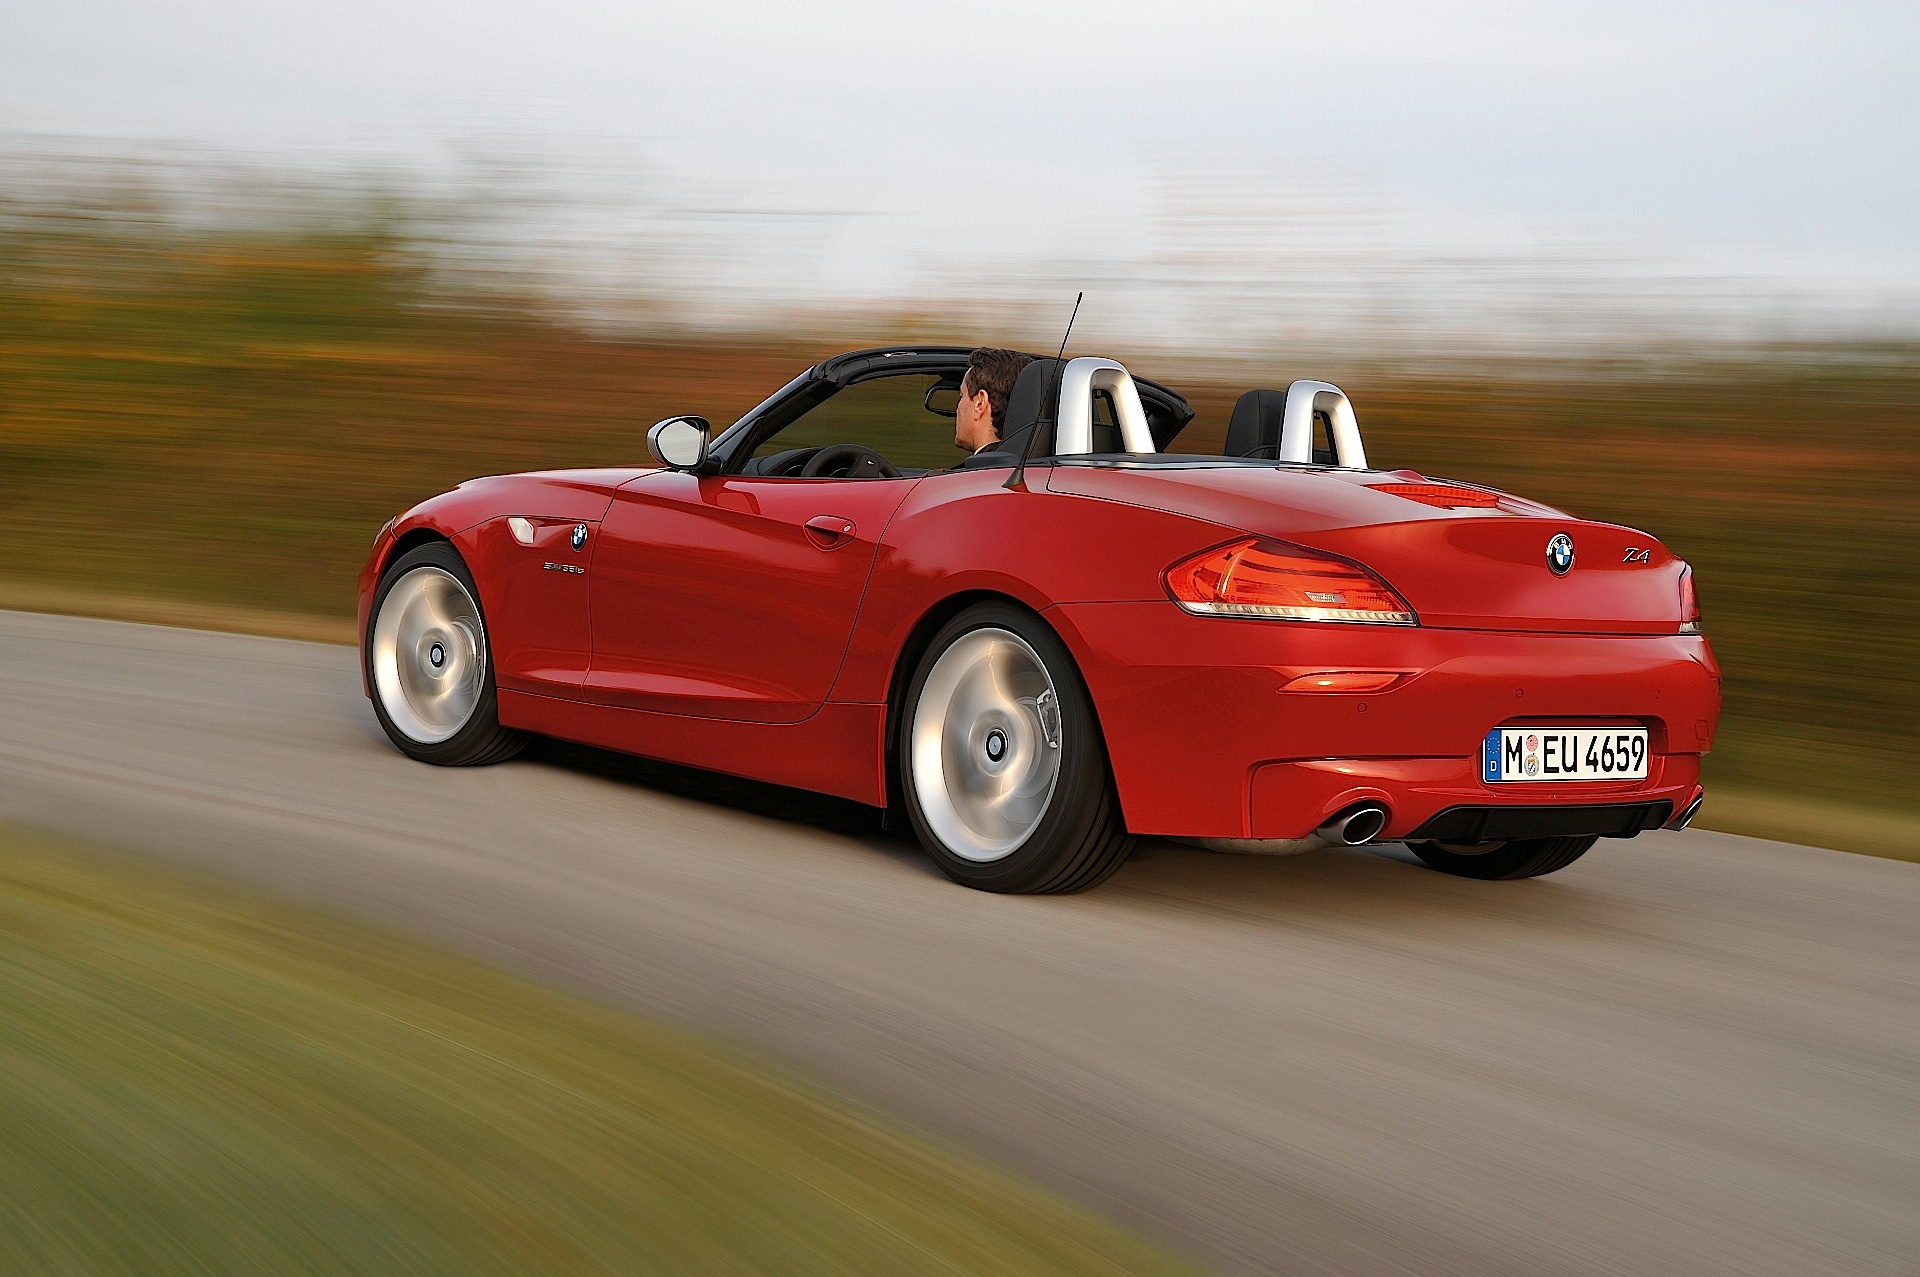 Bmw Z4 Roadster E89 Specs 2009 2010 2011 2012 2013 Autoevolution